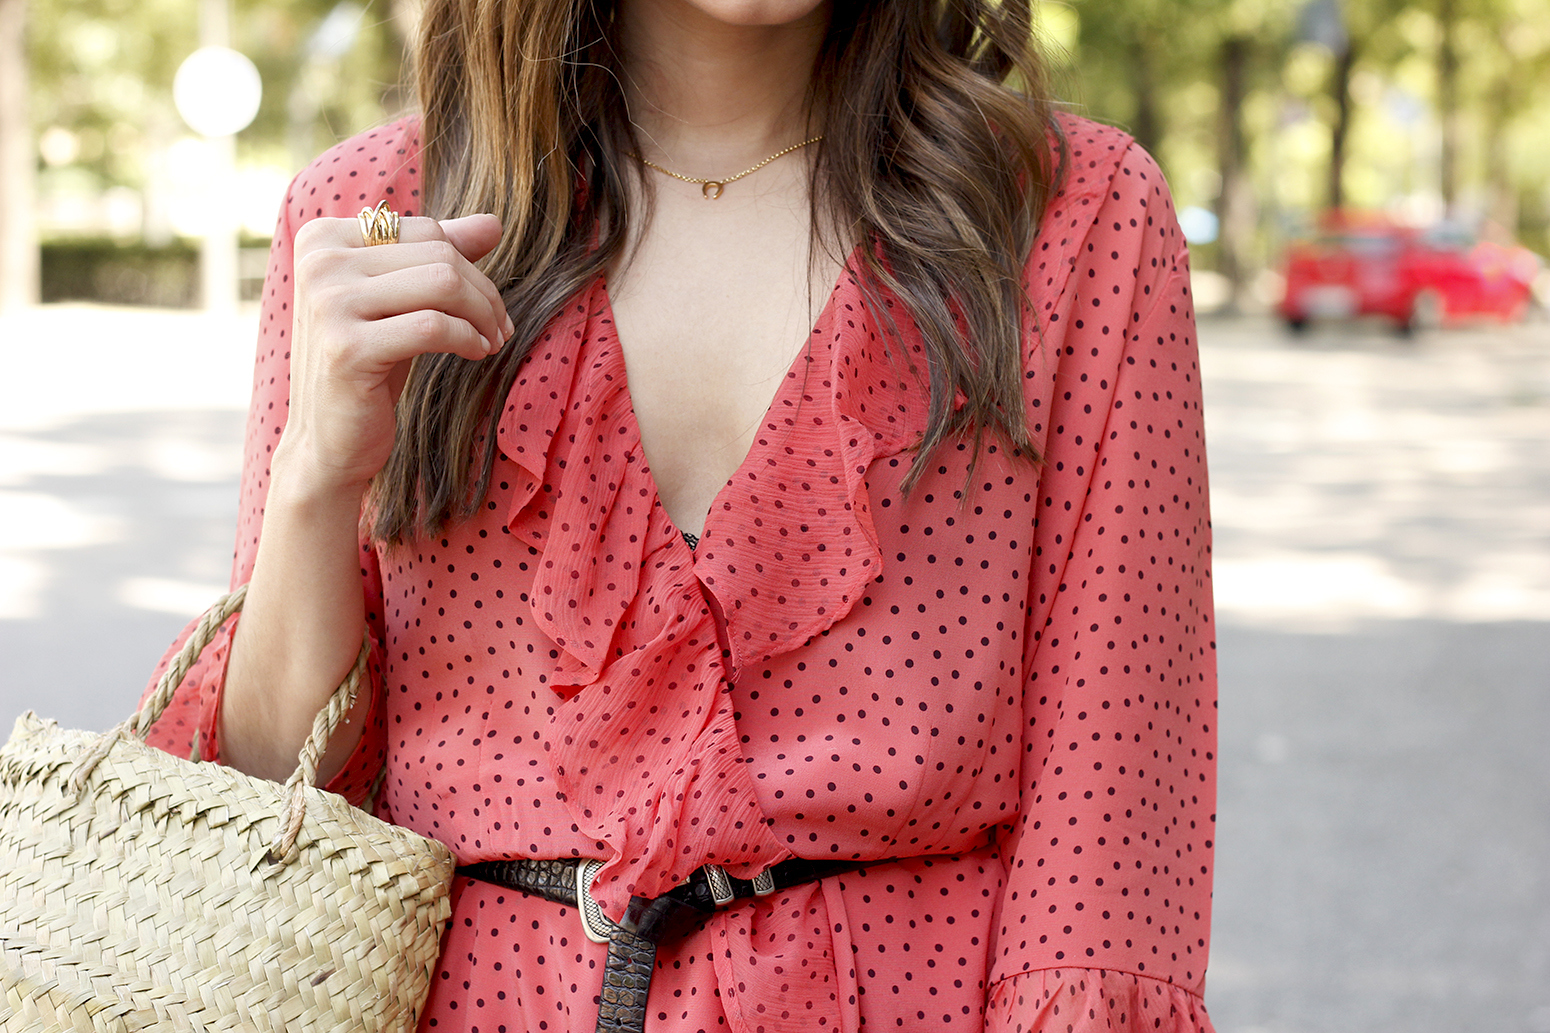 coral dress with dots and frills uterqüe black heels summer outfit style fashion14